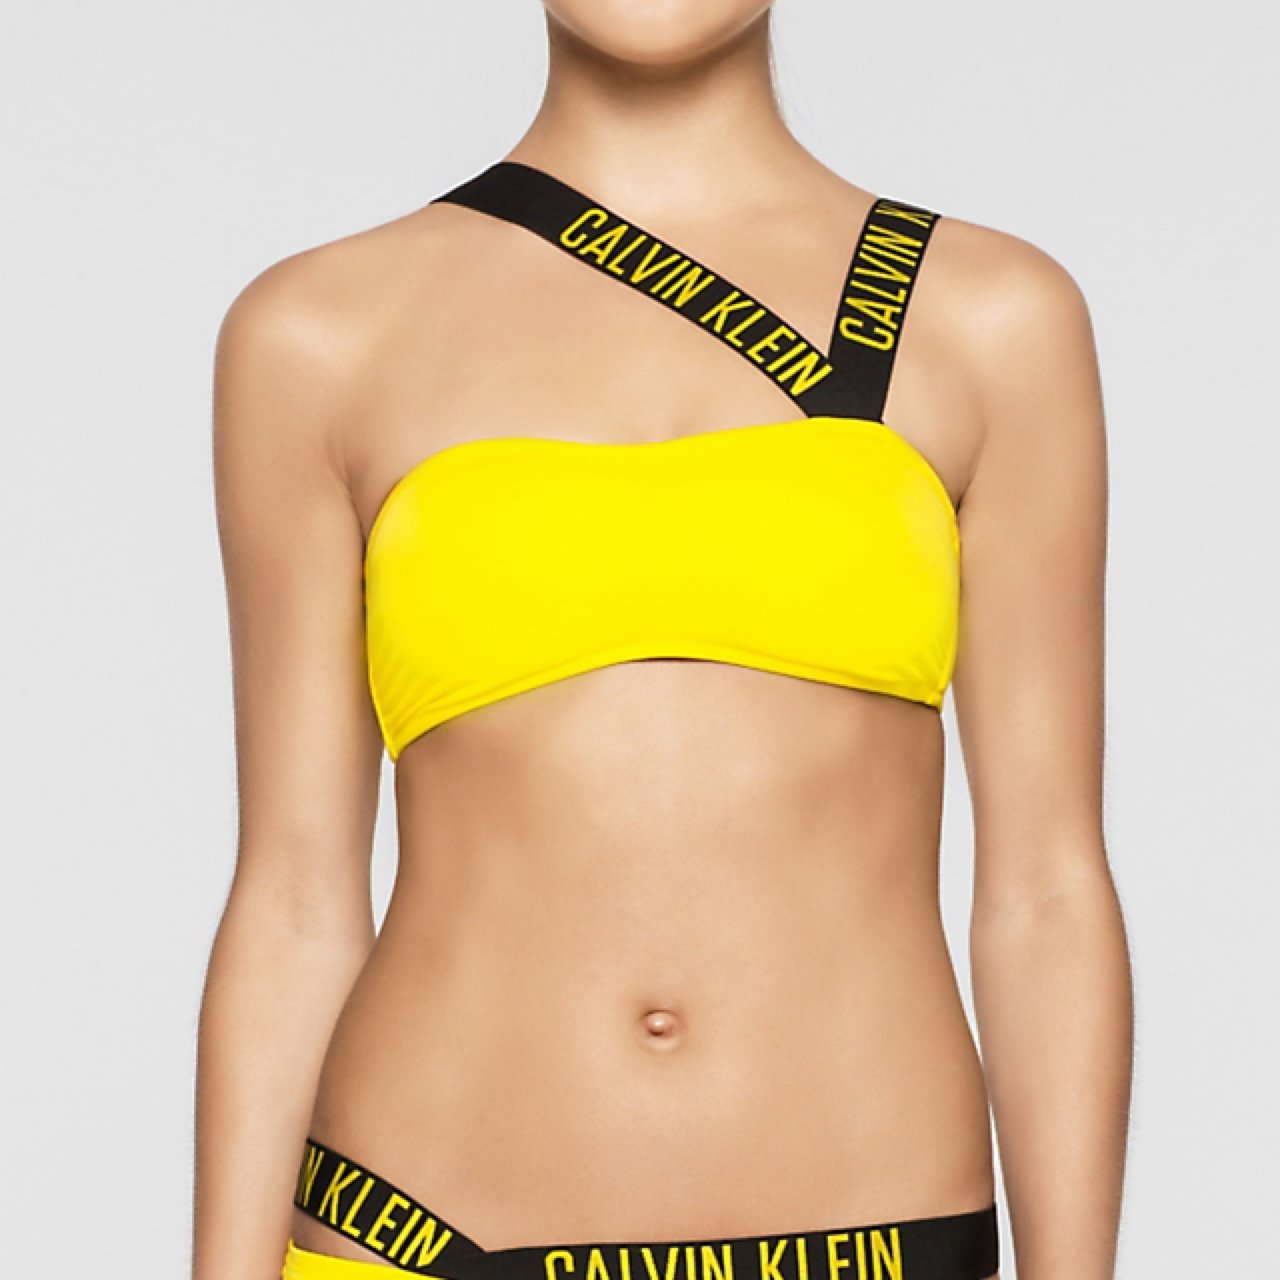 aa517259ee656 Calvin Klein Bikini SOLD OUT! I have S